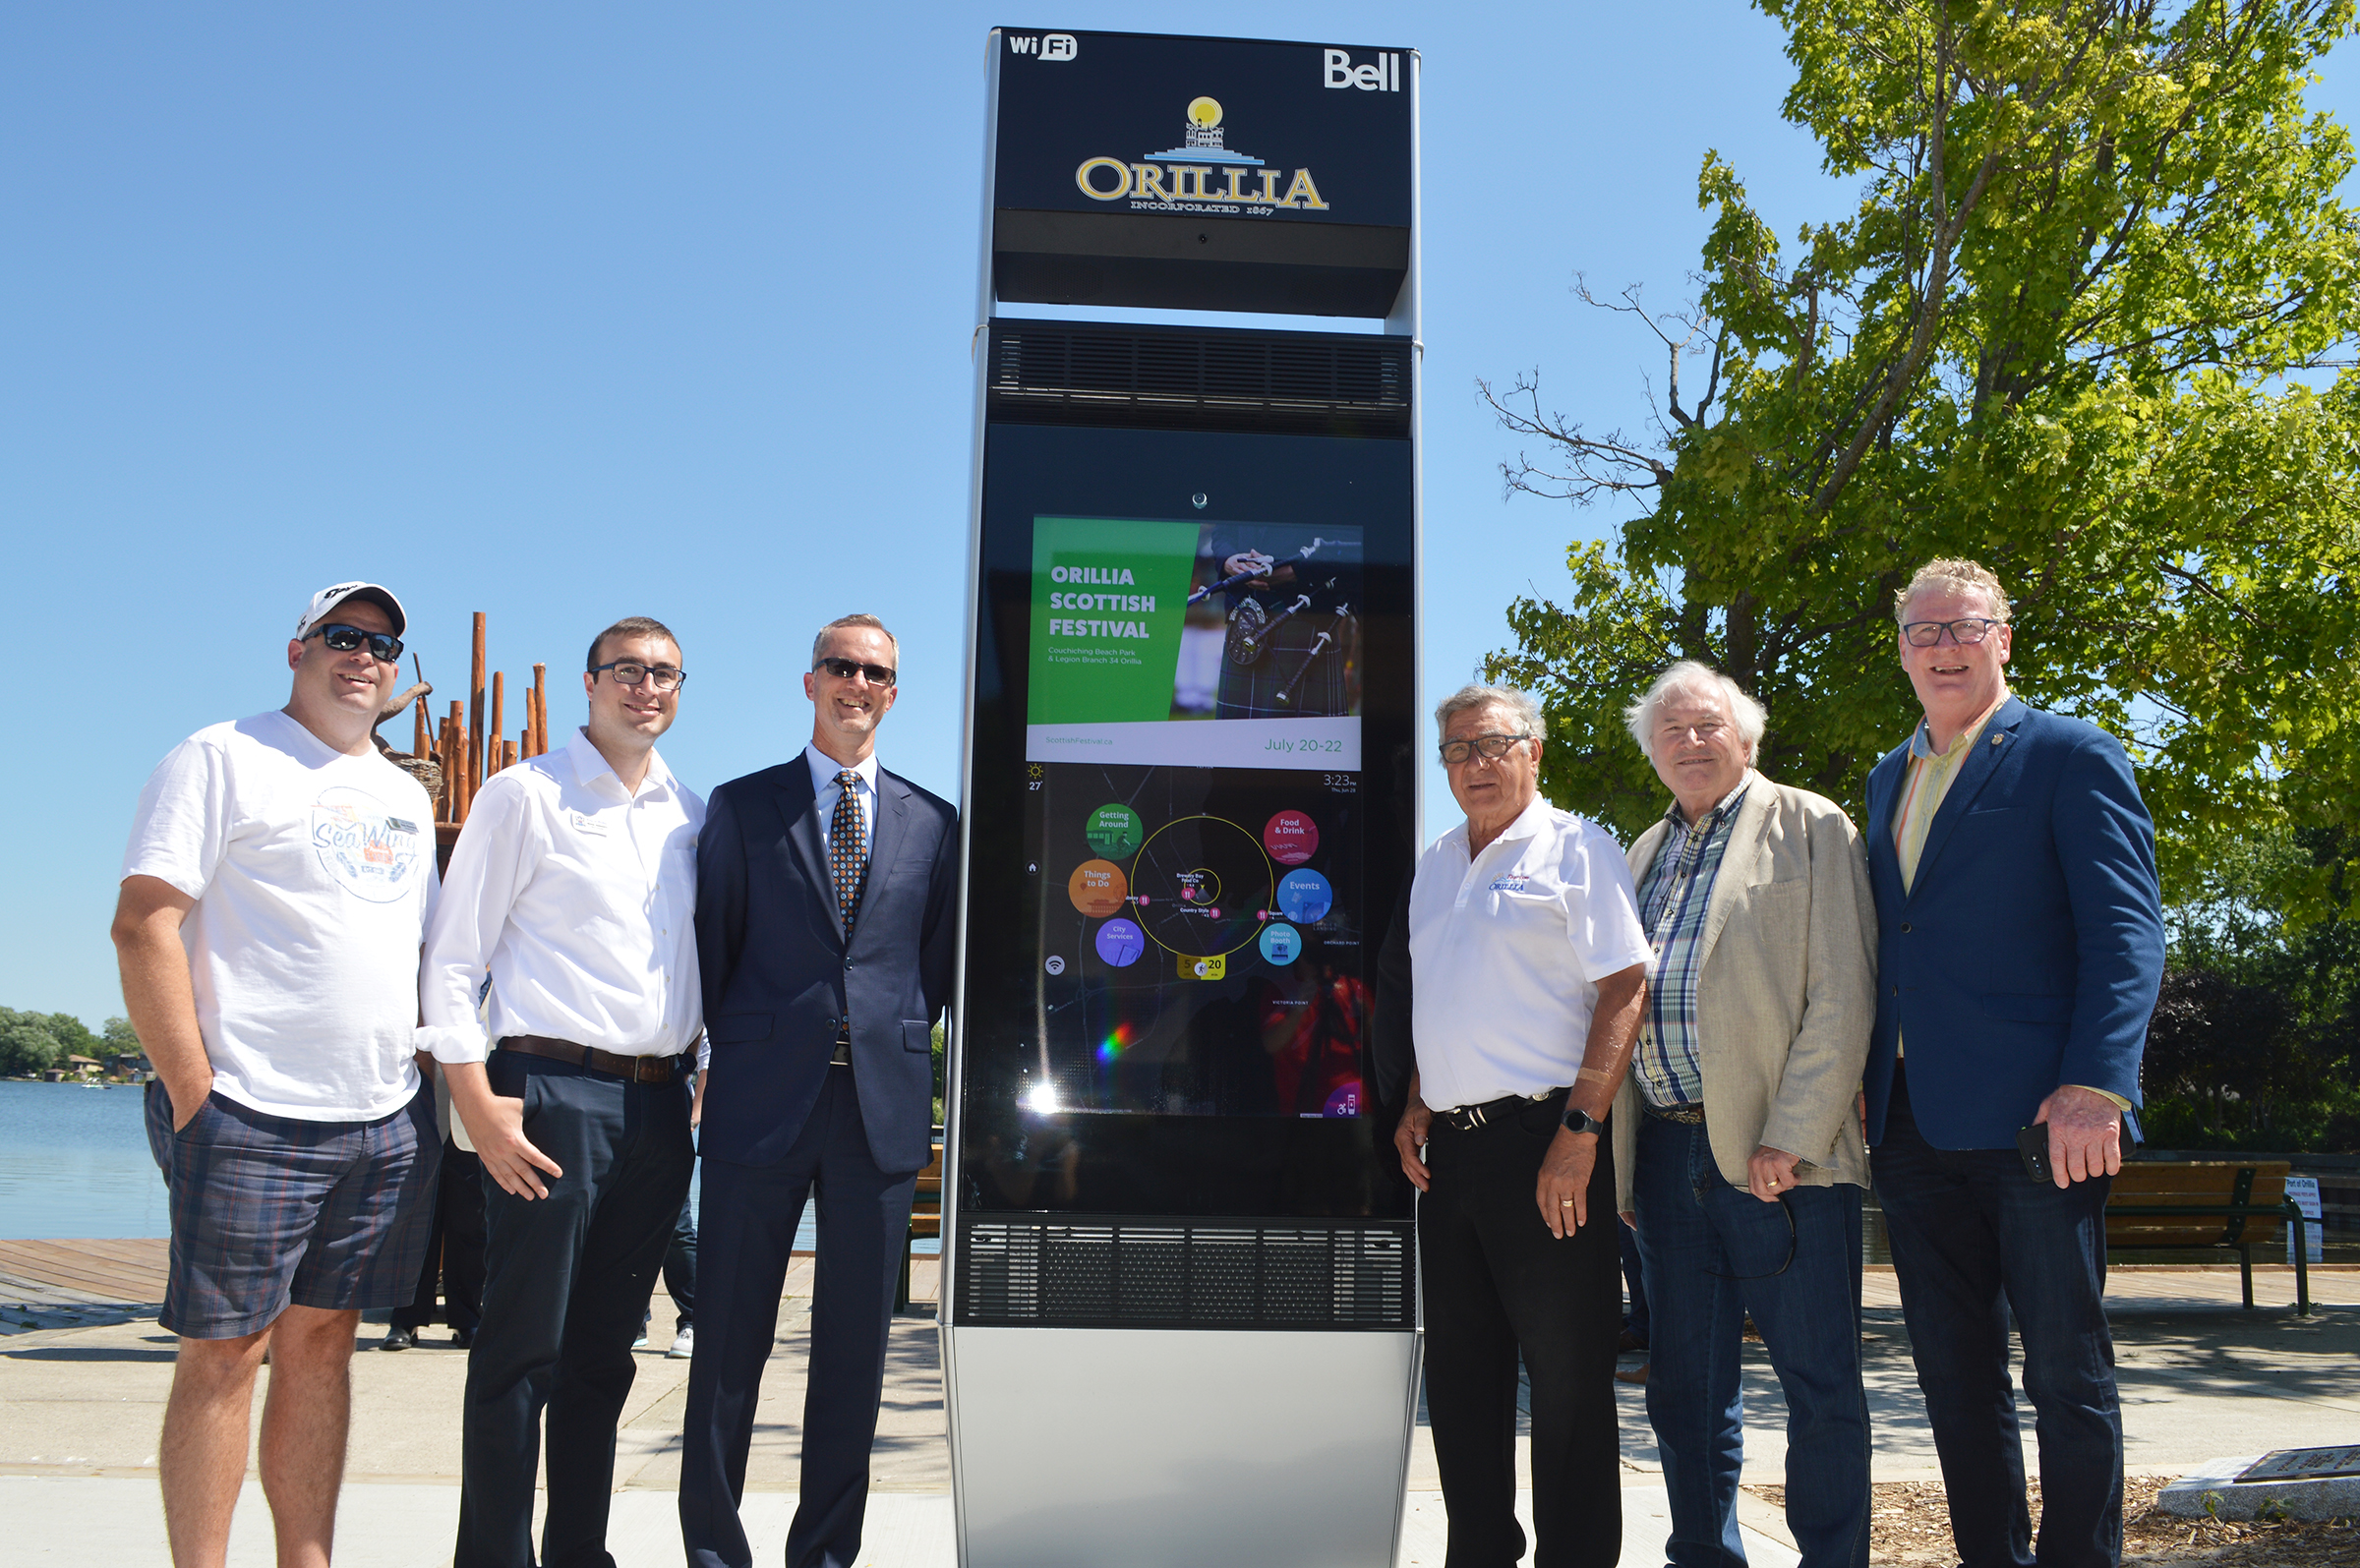 City of Orillia SMART kiosk